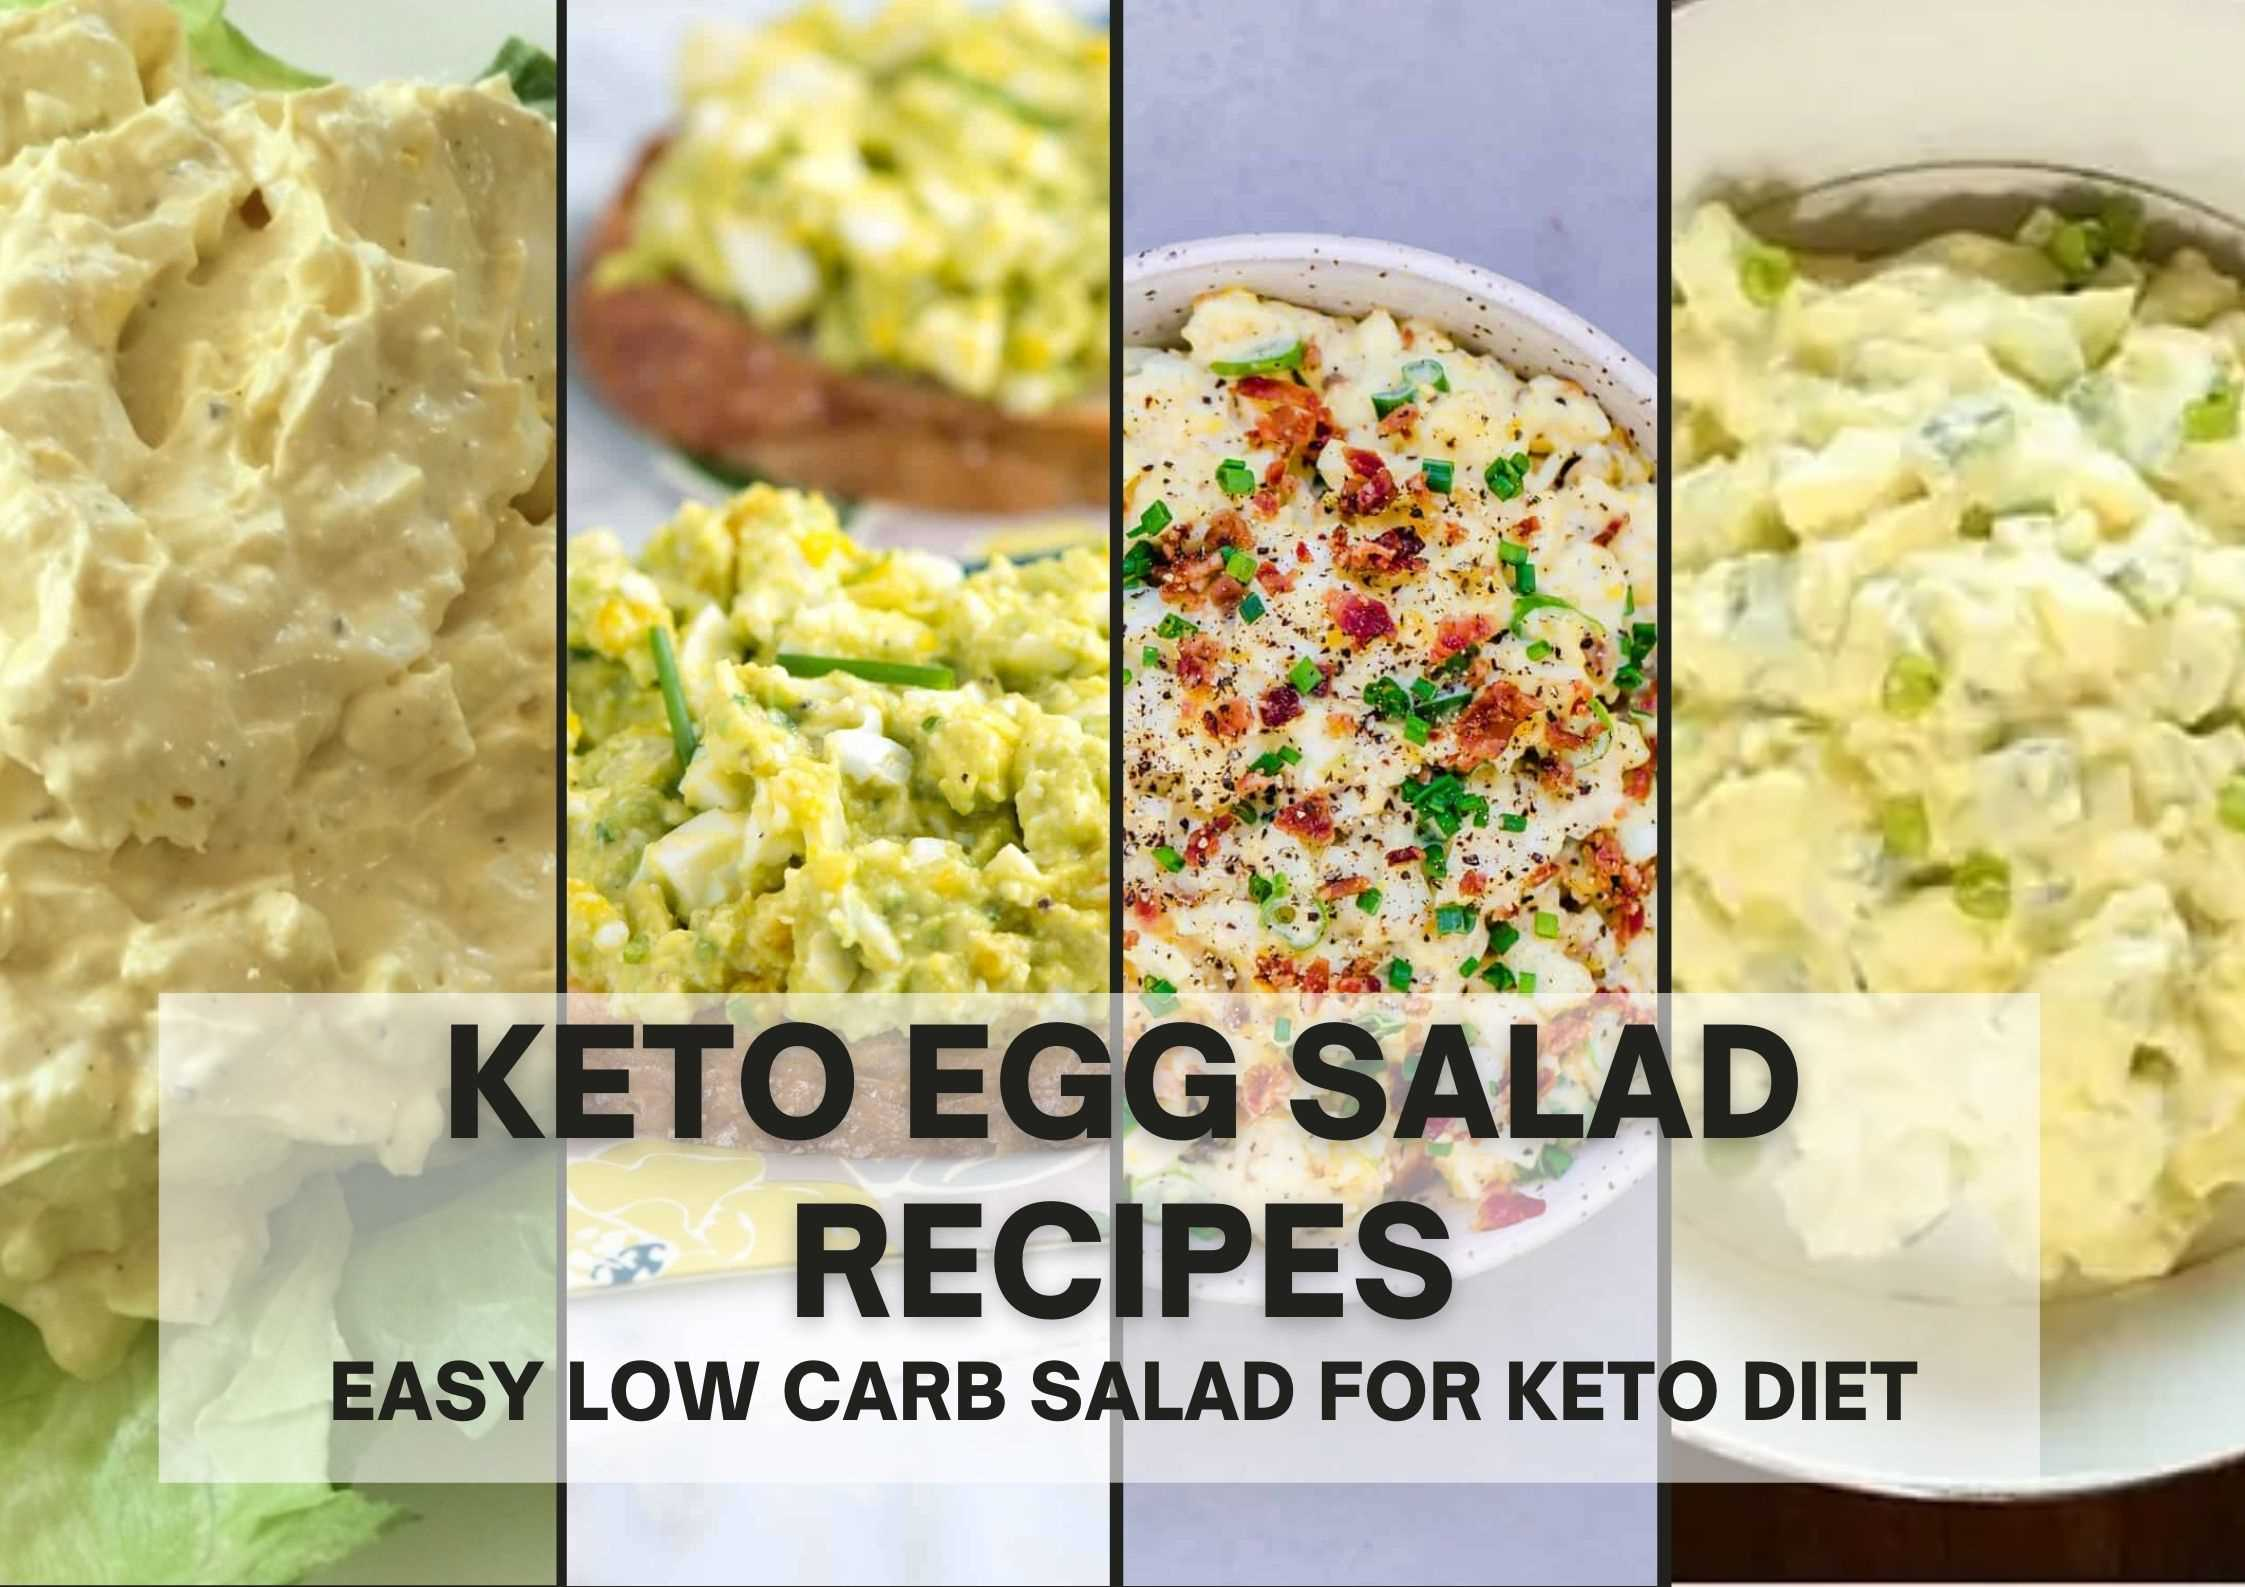 10 KETO EGG SALAD RECIPES – EASY LOW CARB SALAD FOR KETO DIET